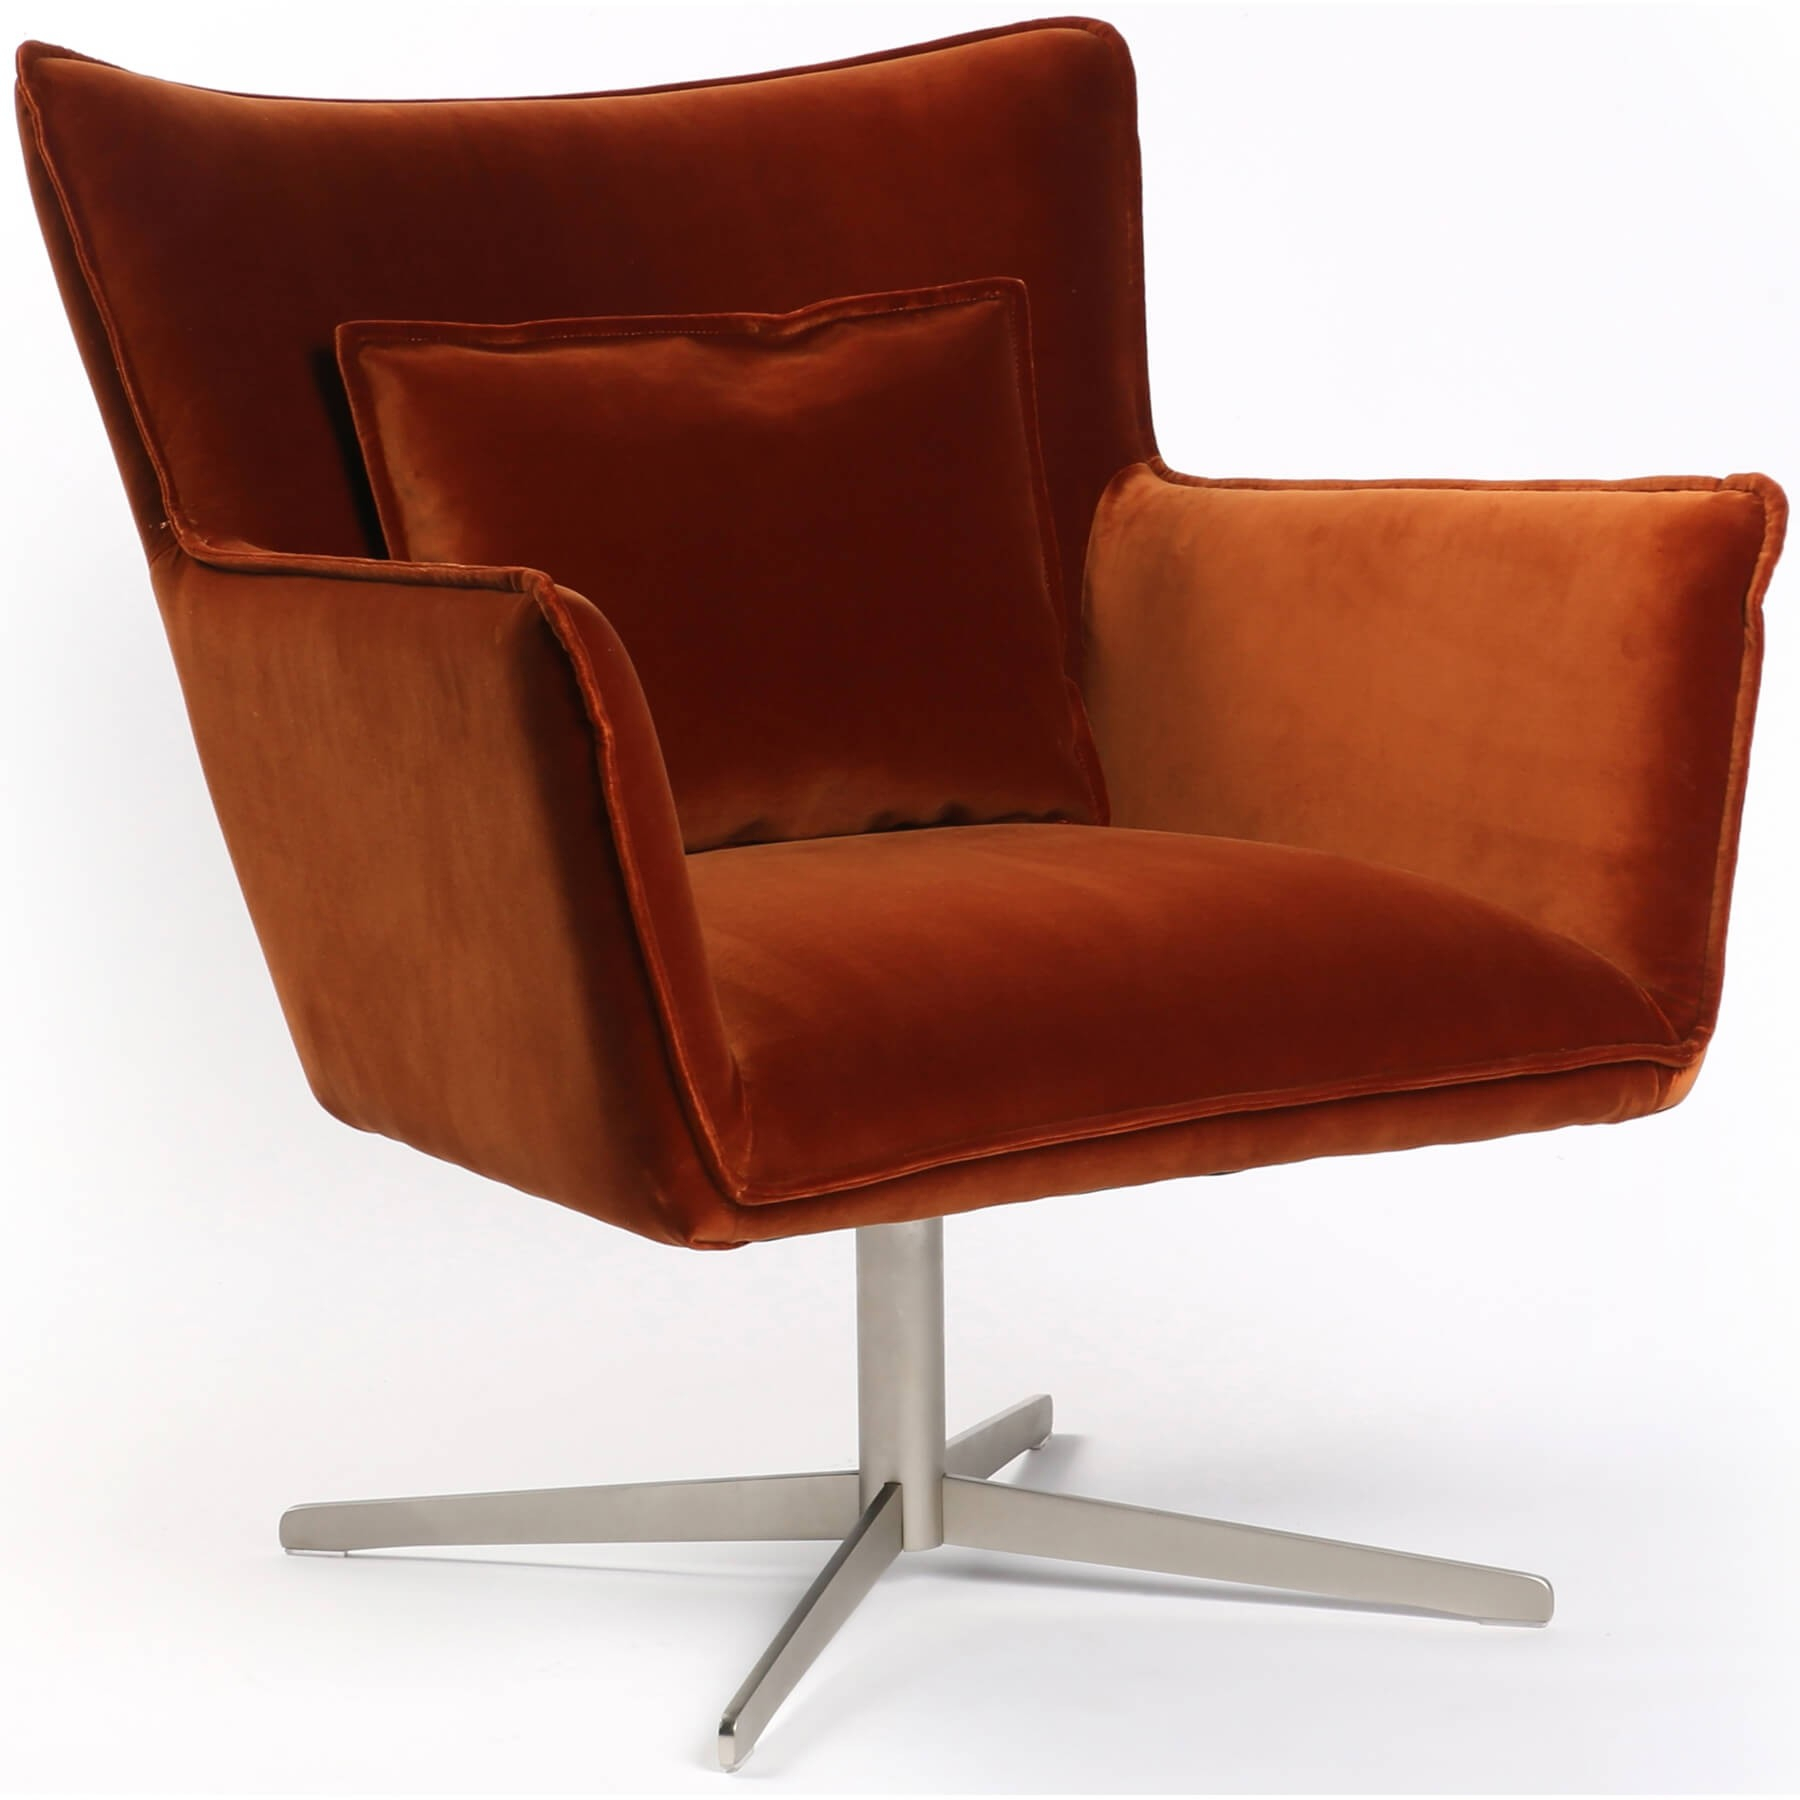 Jacob Swivel Chair, Sienna - Recliners, Swivel, Gliders - Chairs inside Swivel Tobacco Leather Chairs